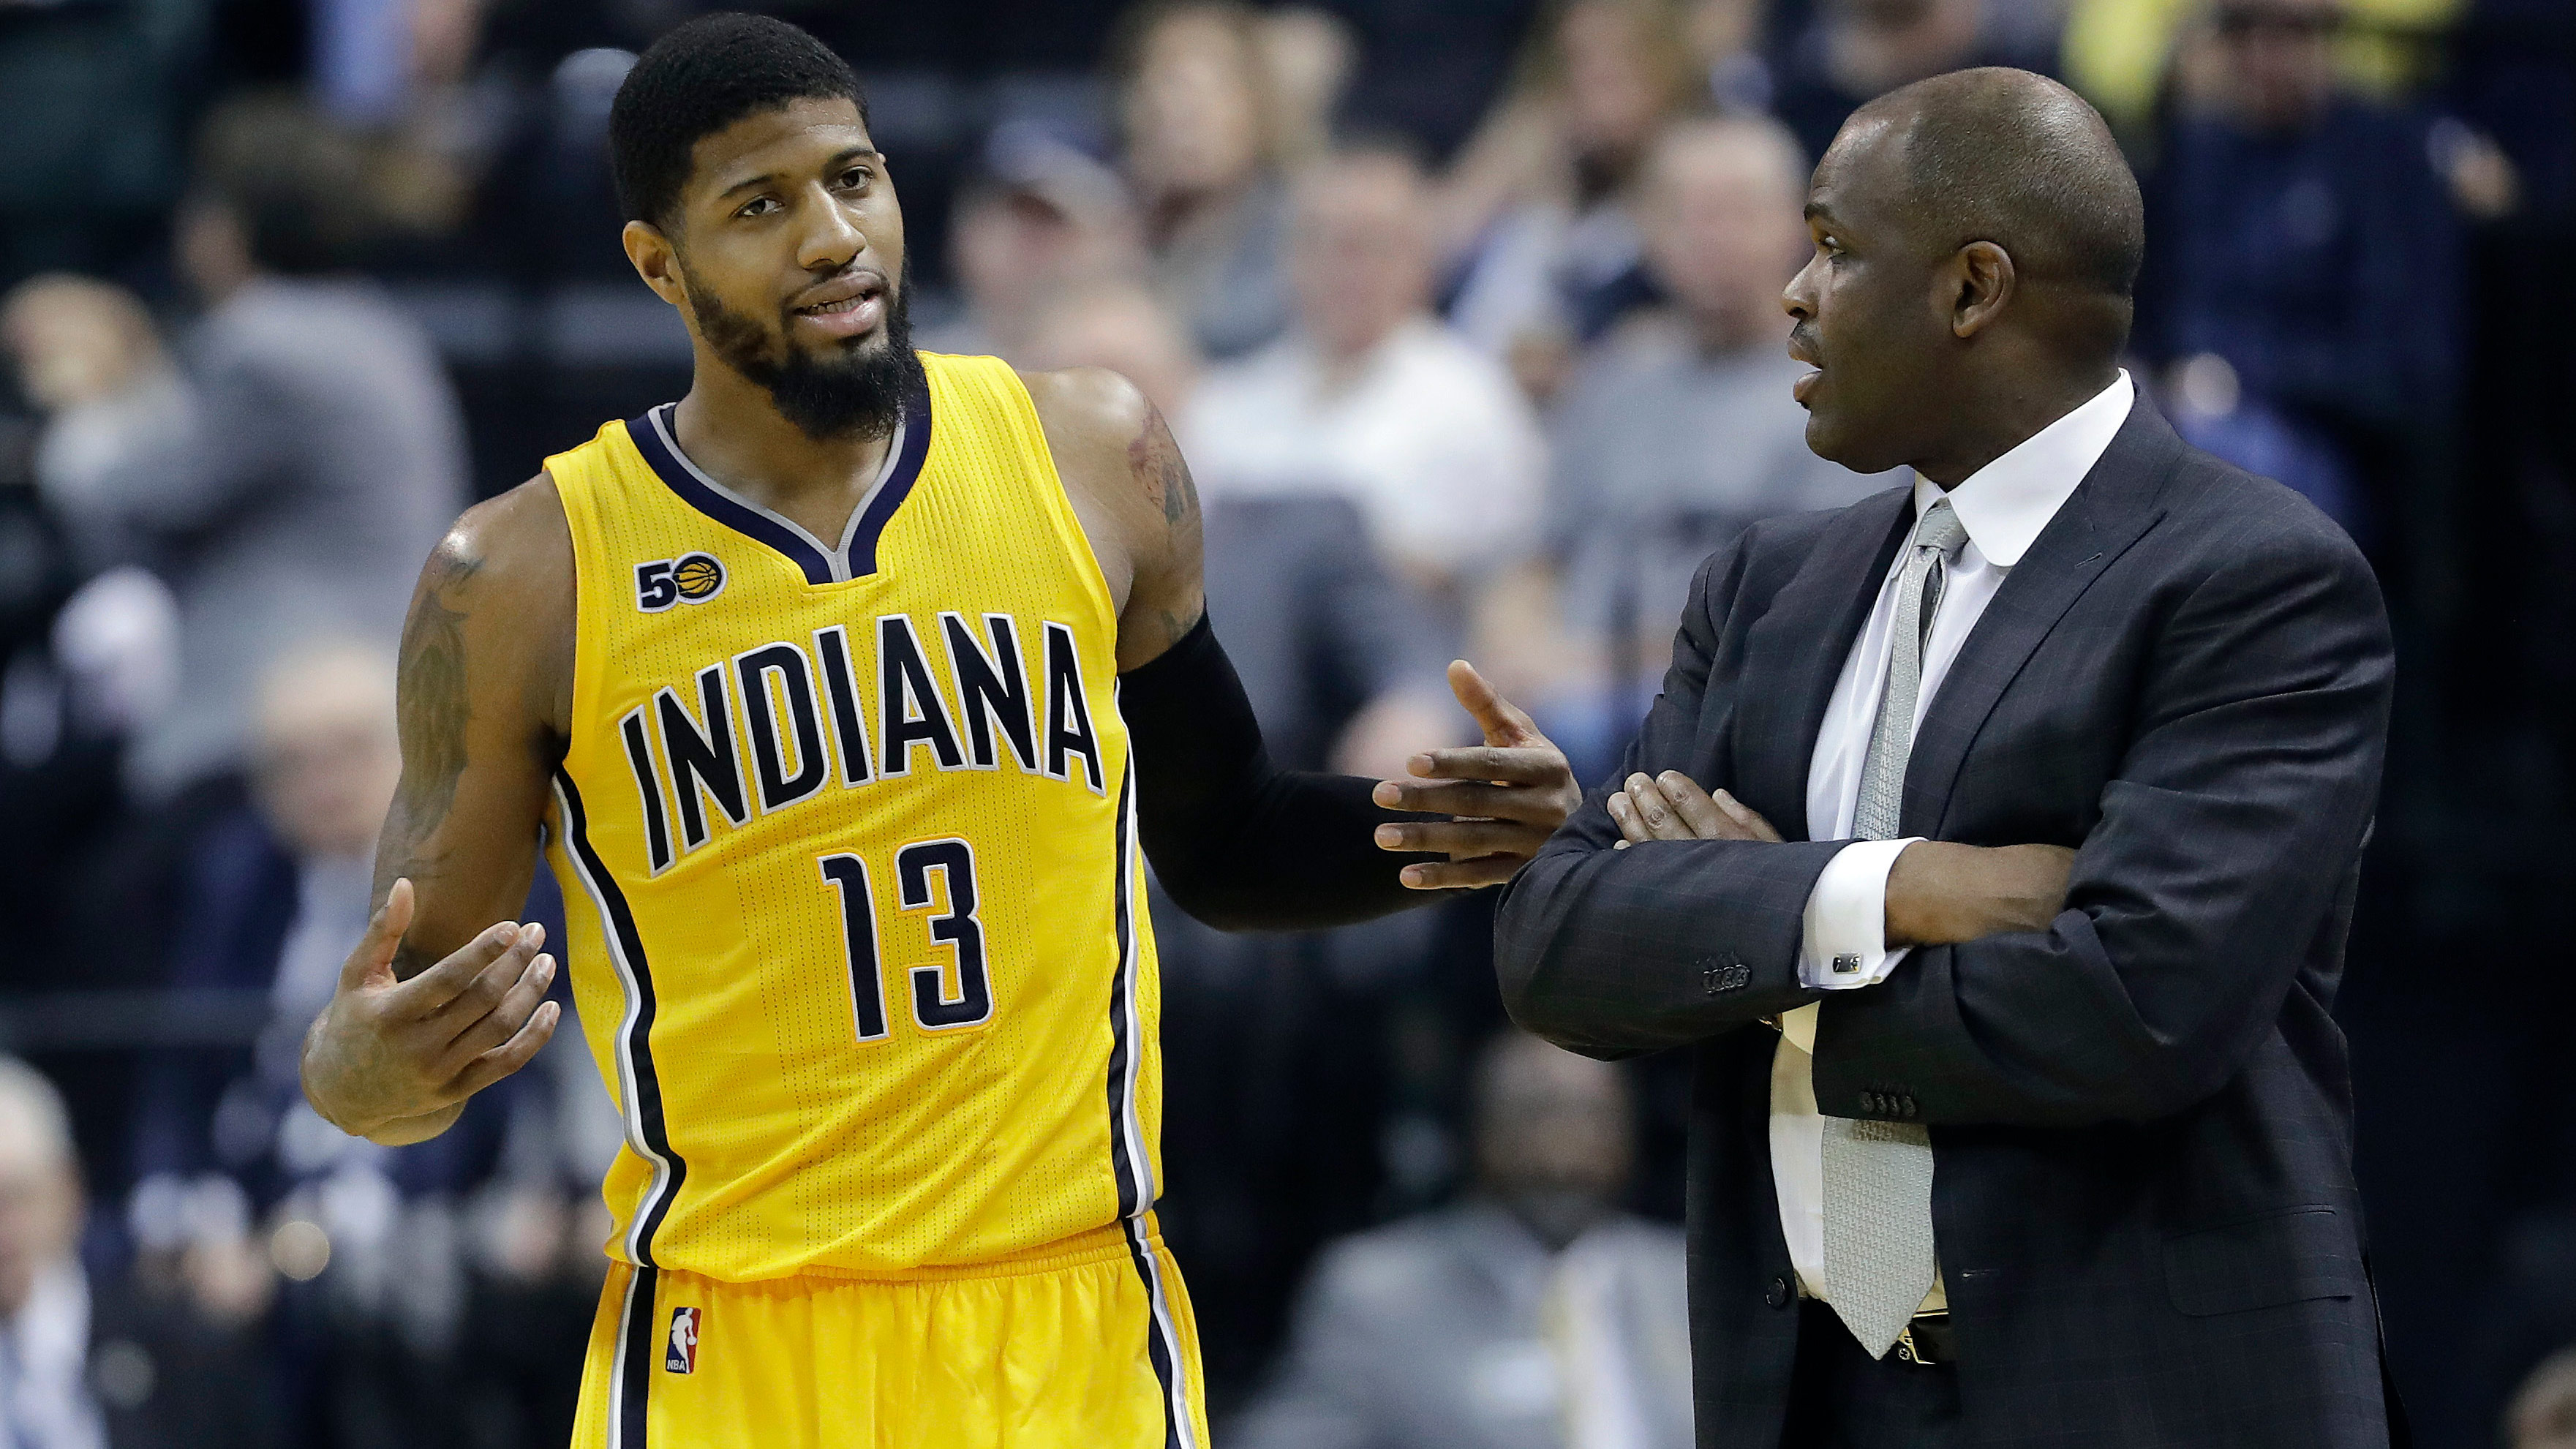 Indiana Pacers' Paul George (13) talks with head coach Nate McMillan during the second half of an NBA basketball game against the Milwaukee Bucks, Saturday, Feb. 11, 2017, in Indianapolis. (AP Photo/Darron Cummings)